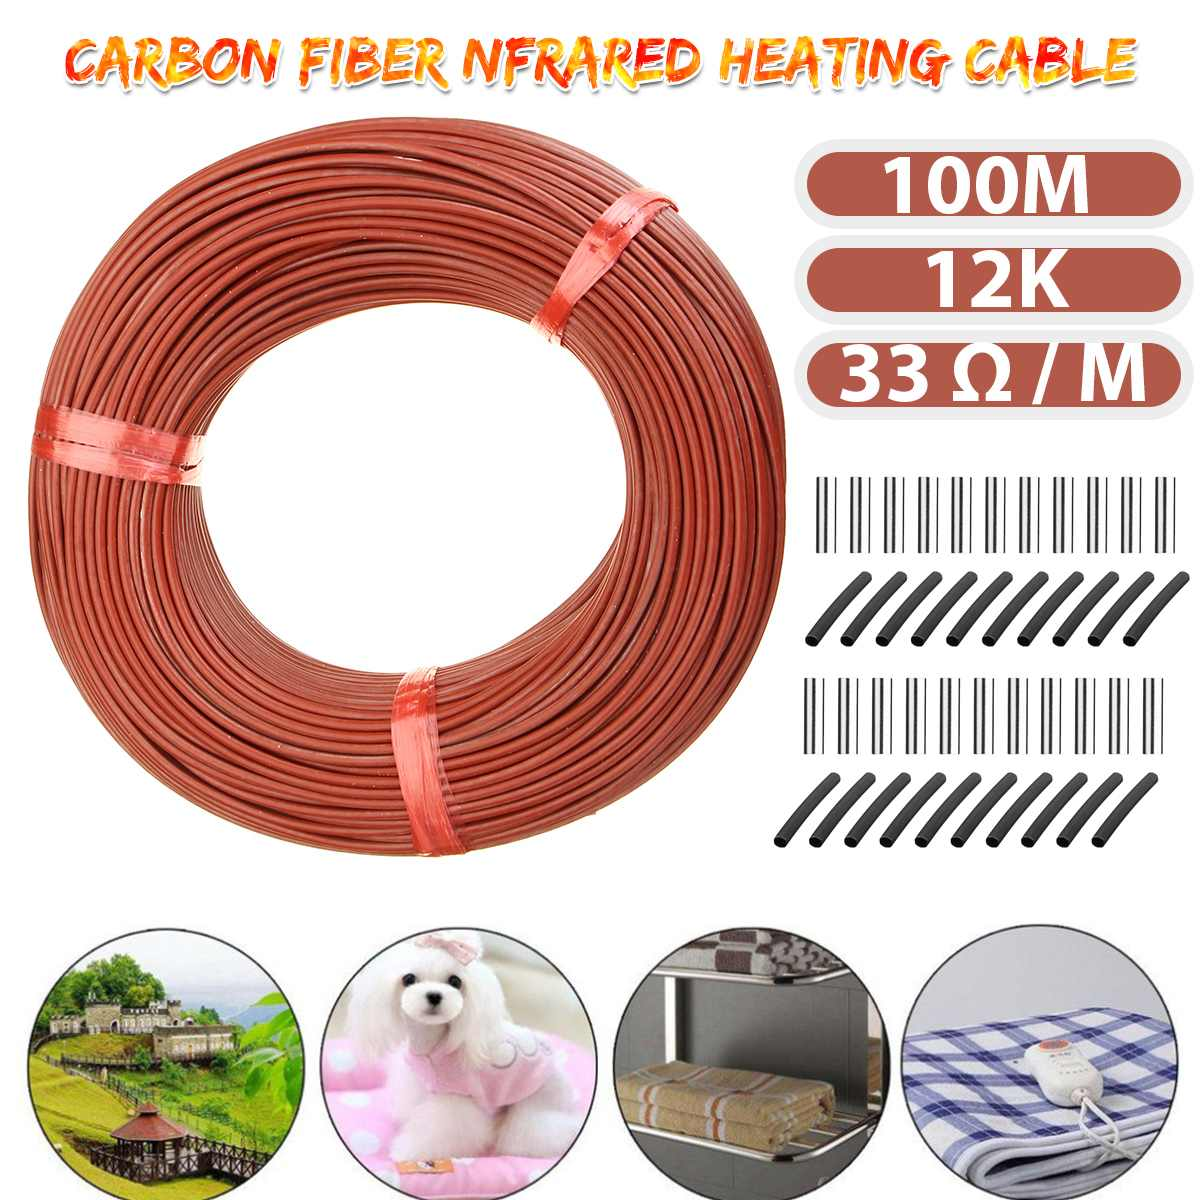 1 Roll 100M Floor Warm Heating Cable Heater Wire Home Living Room Greenhouse Heating Equipment 12k Carbon Fiber Heating Wire